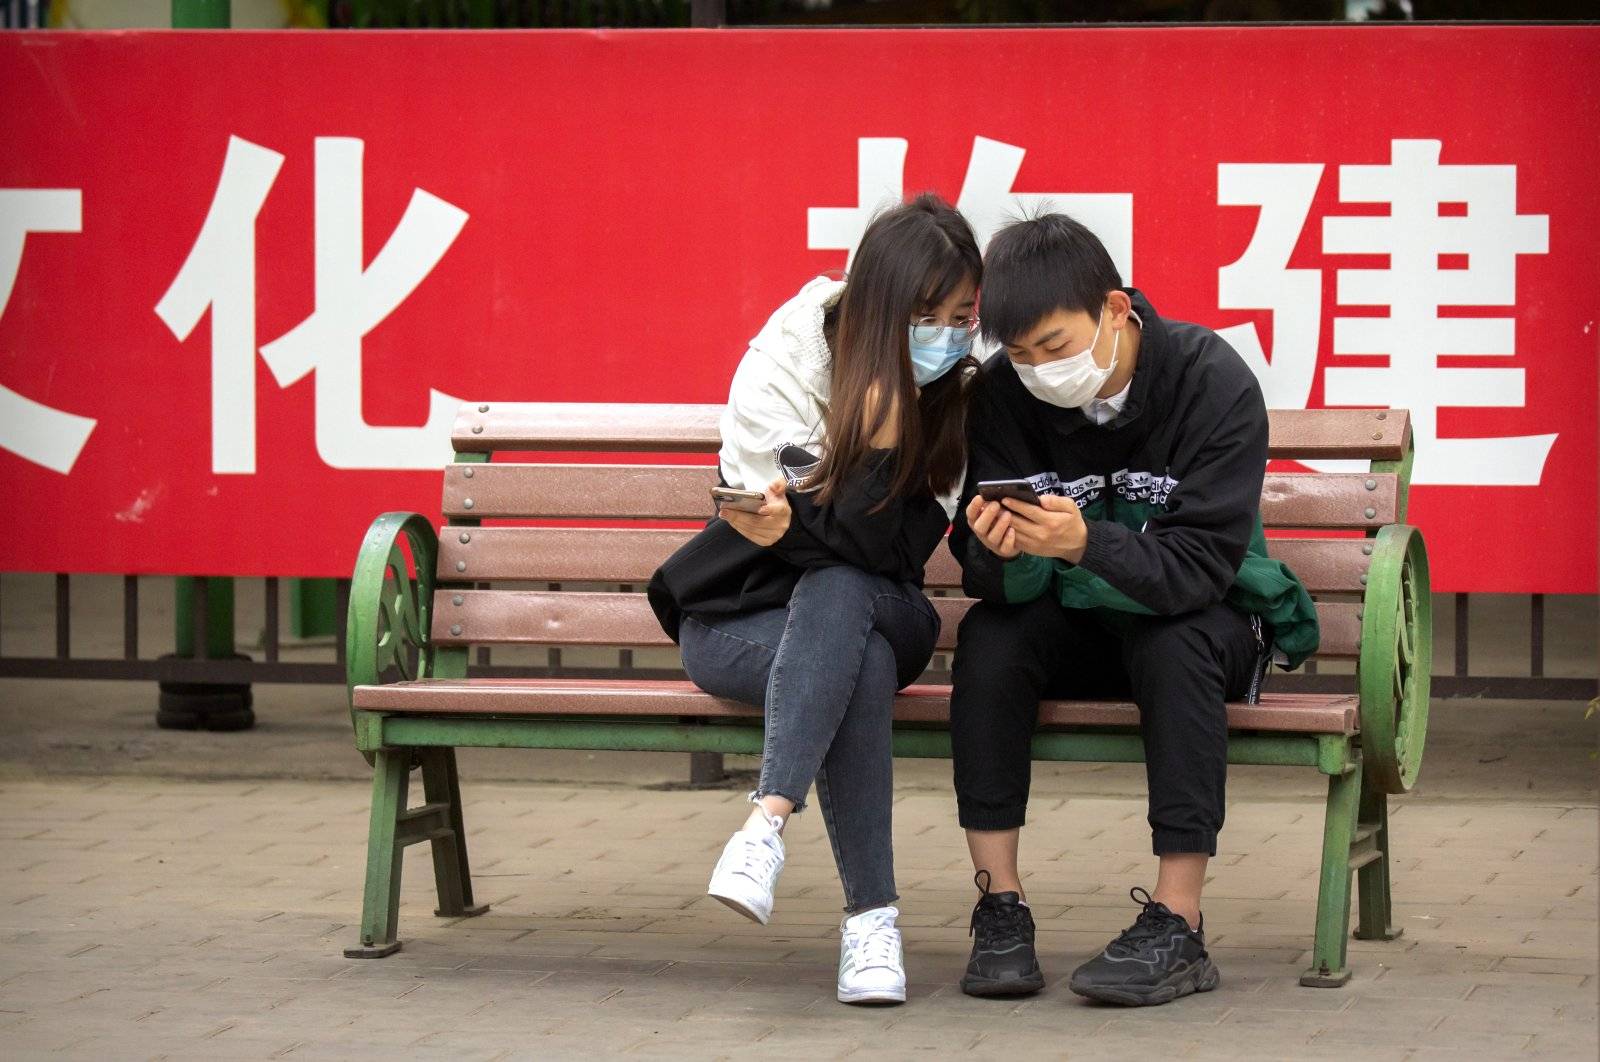 People wearing face masks to protect against the spread of the new coronavirus sit on a bench in front of a propaganda banner encouraging people to wear masks at a public park in Beijing, Thursday, May 7, 2020. (AP Photo)